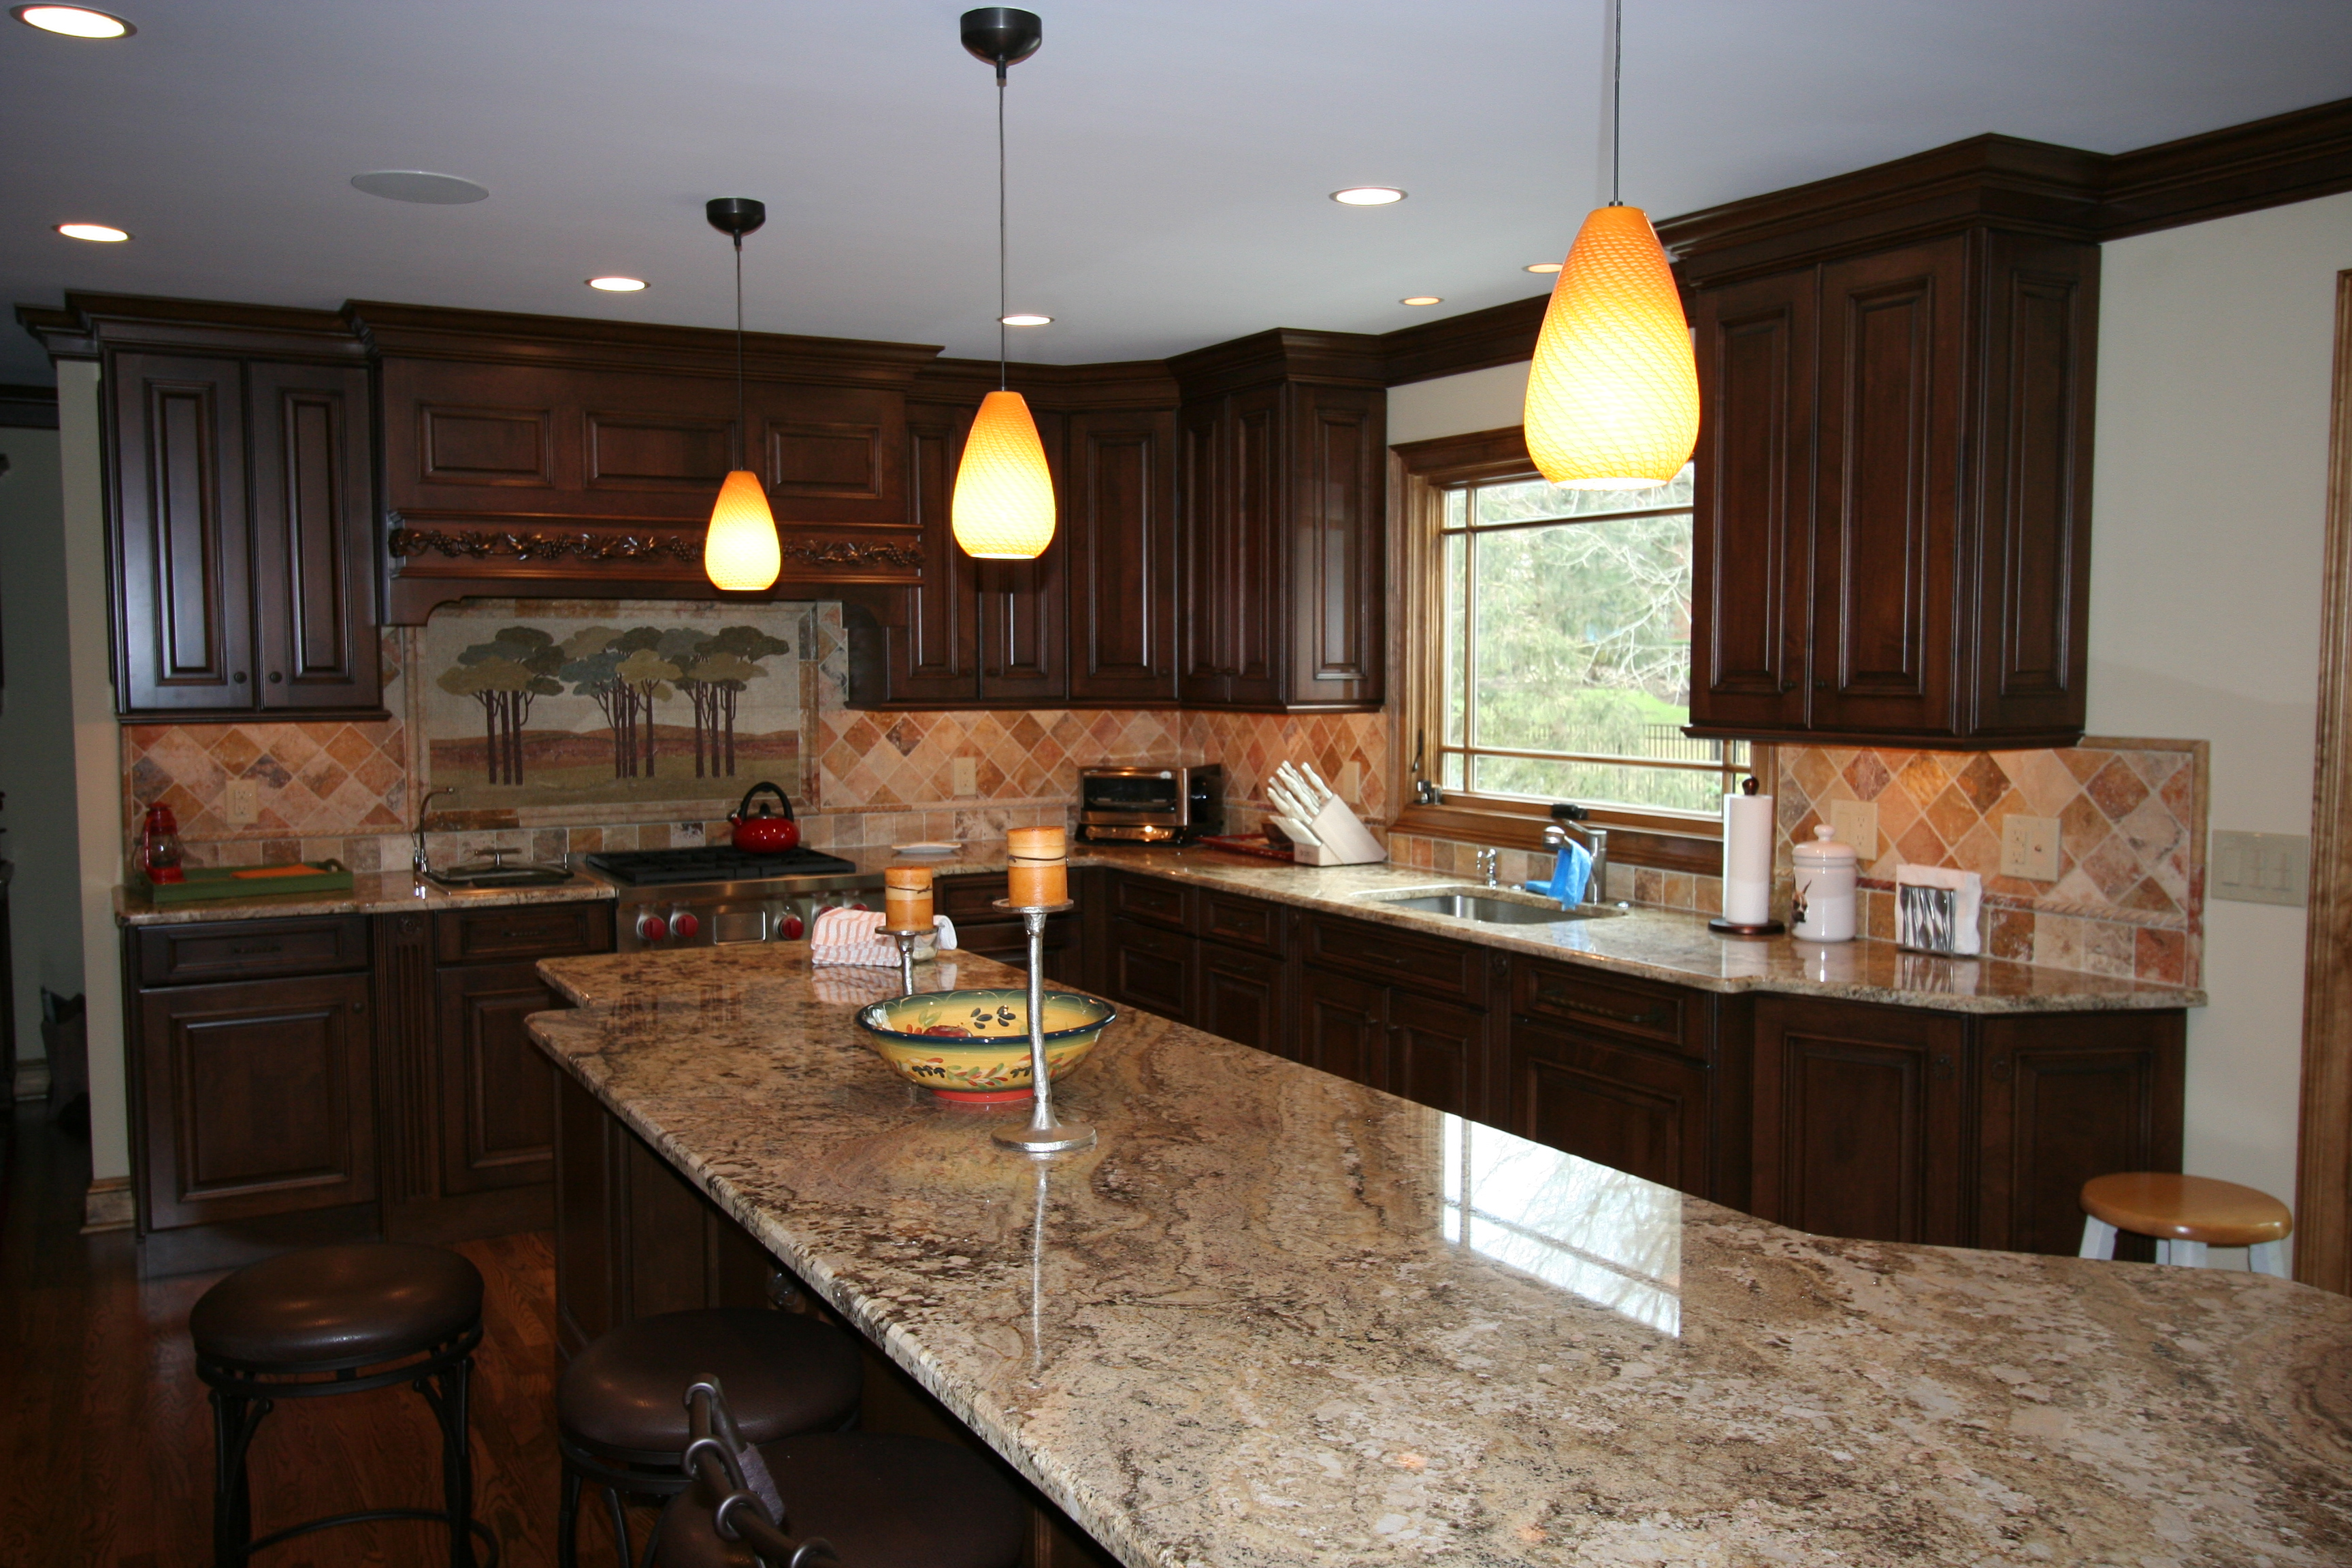 Custer kitchens custom kitchen cabinets from brookhaven for Custom kitchens